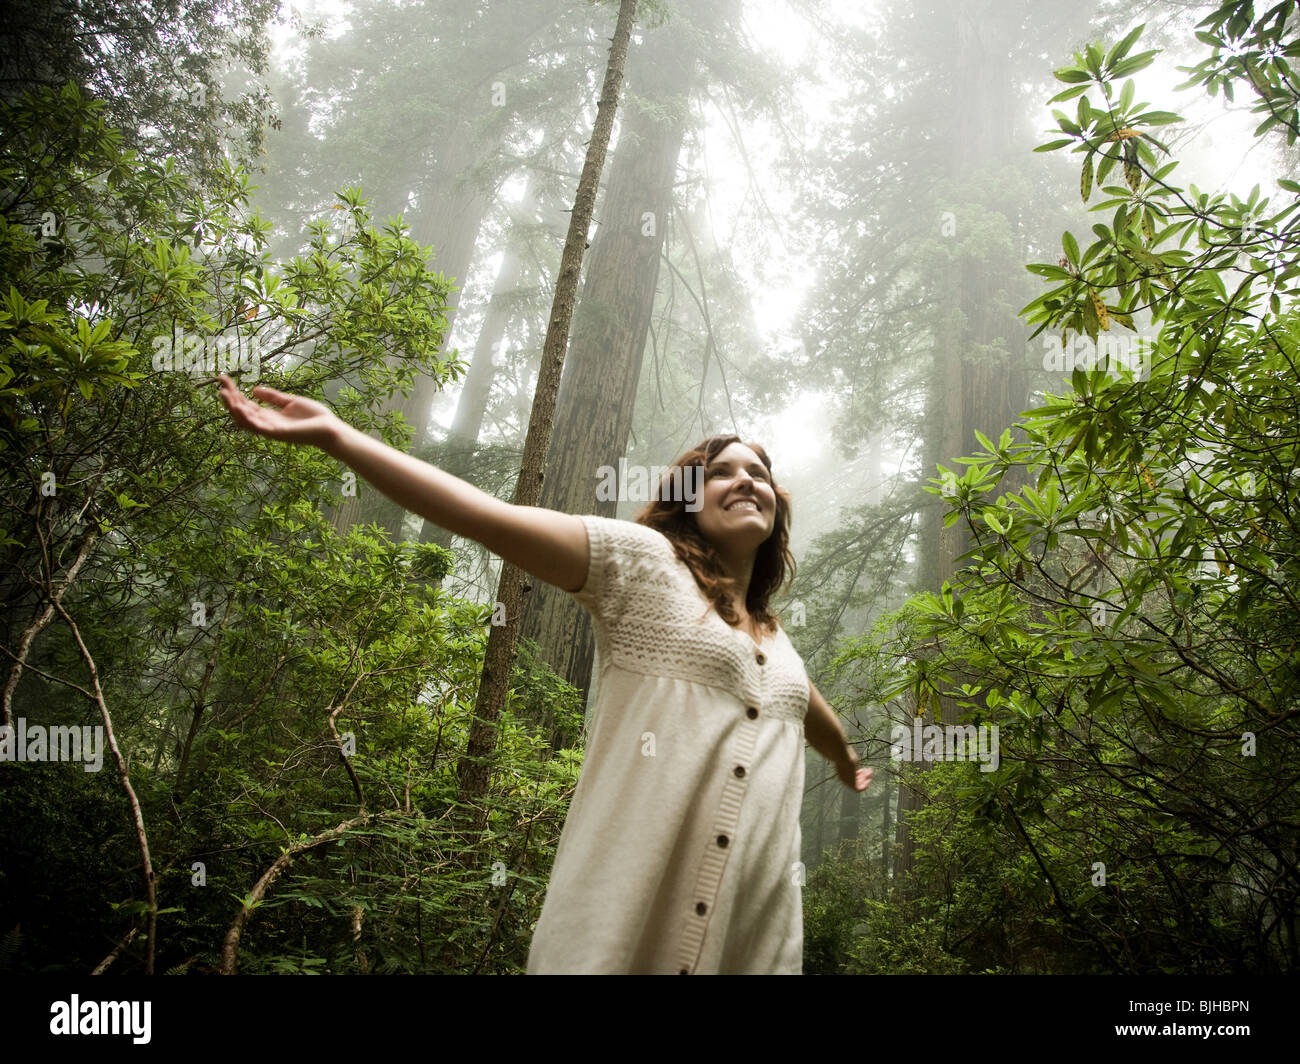 woman walking through a forest of giant redwoods - Stock Image